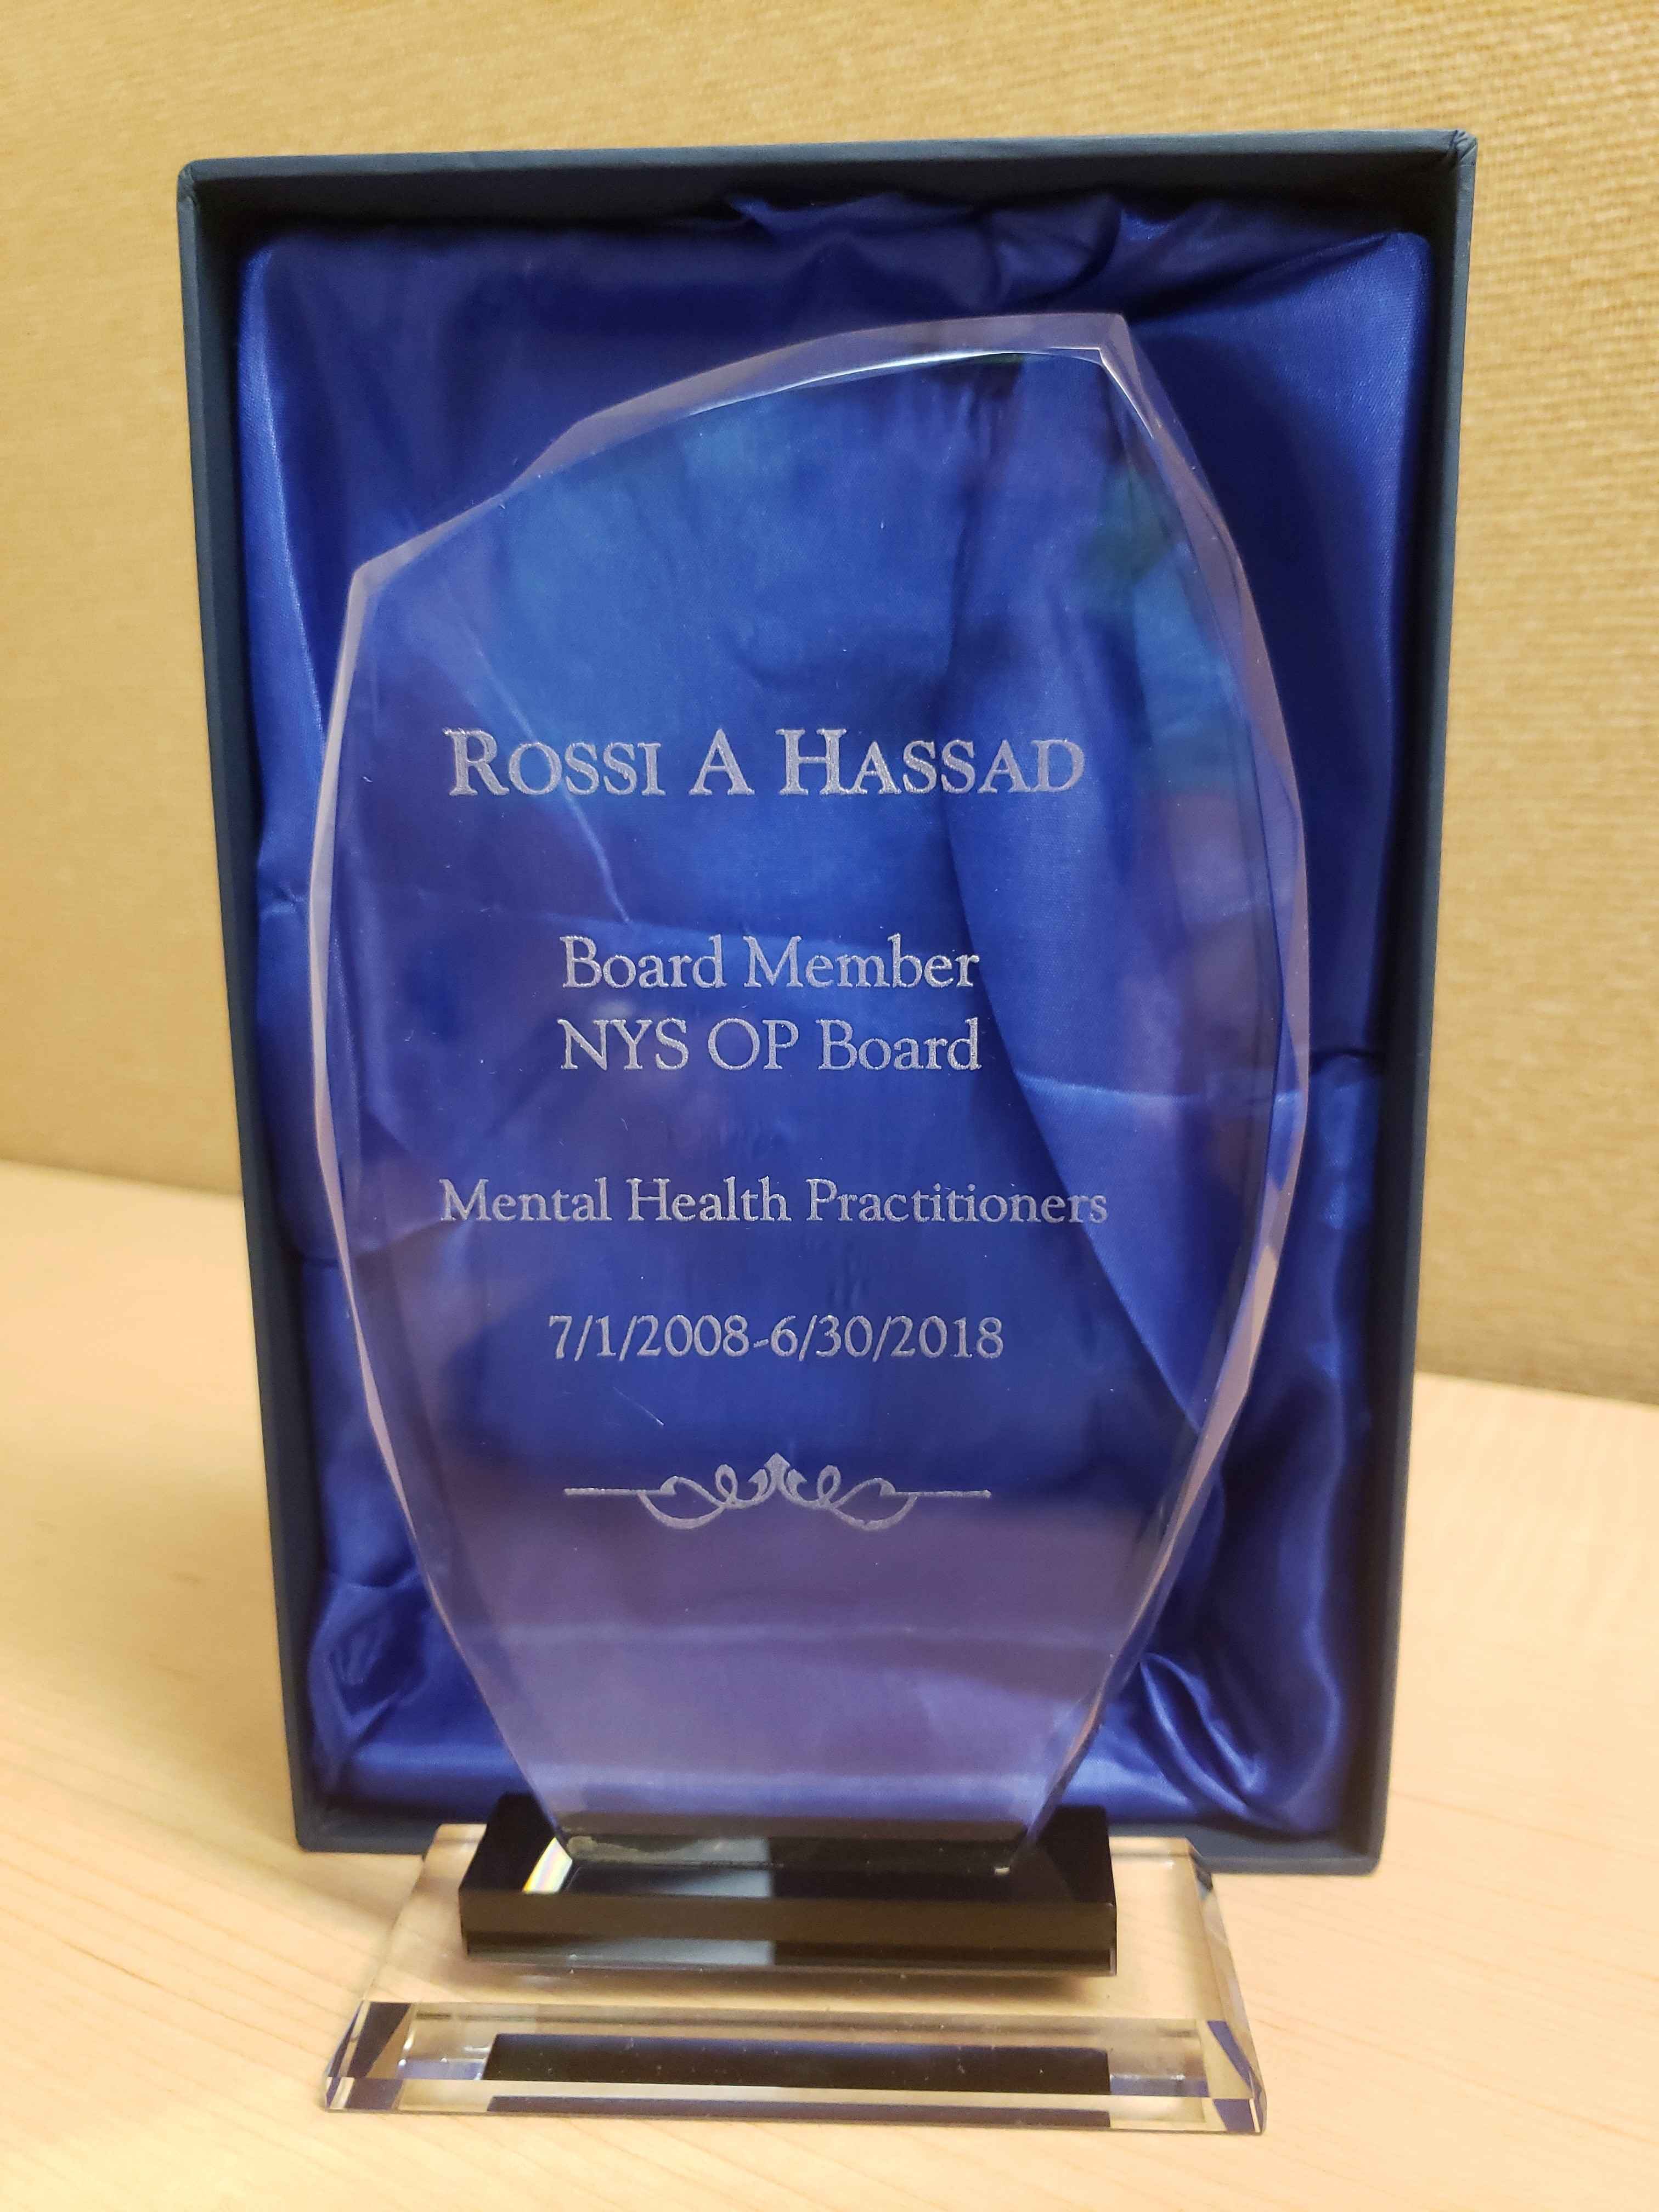 Award for Dr. Rossi Hassad